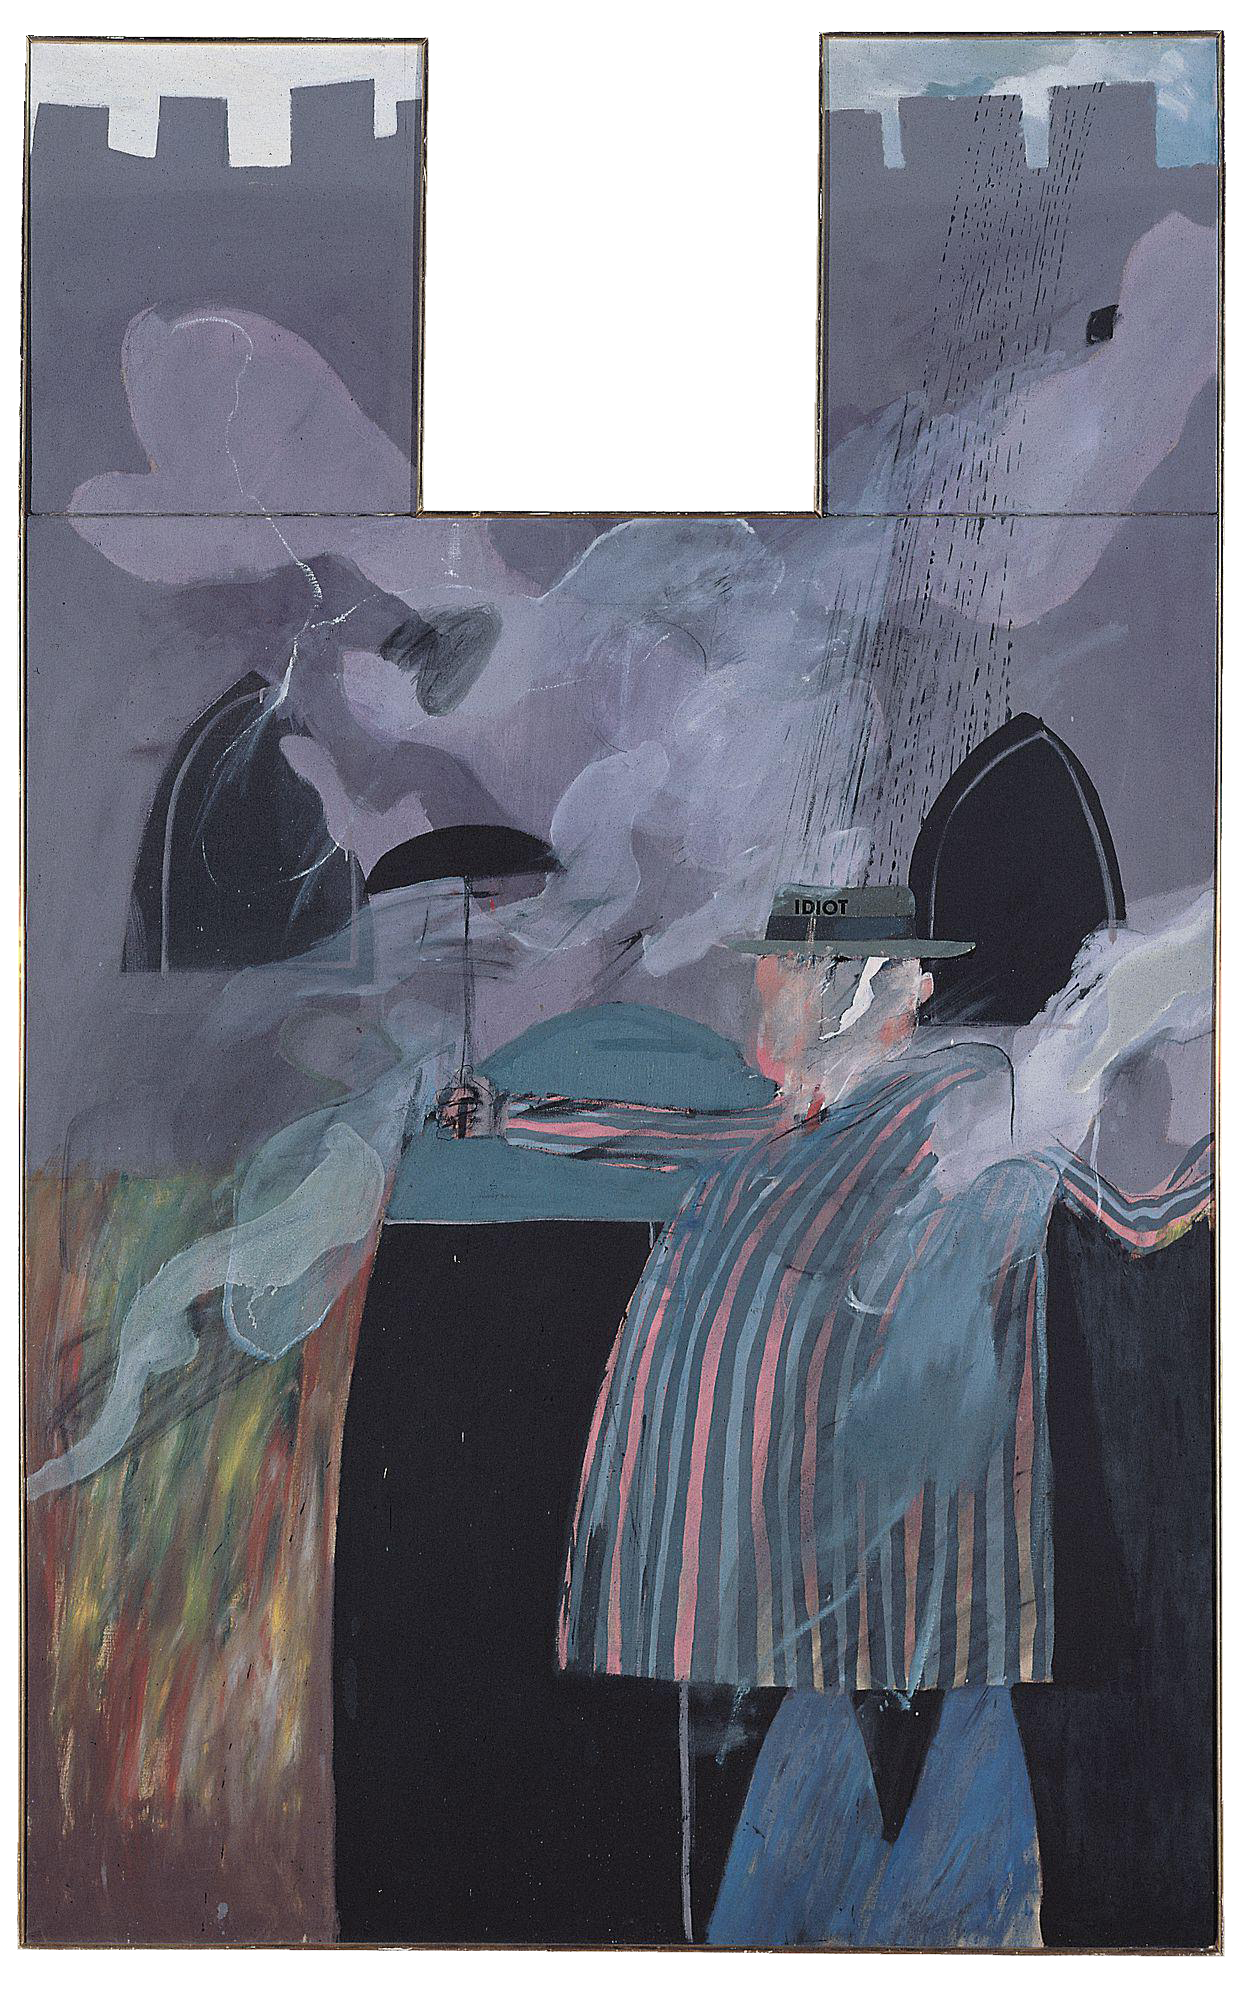 <i>Man stood in front of his house with rain descending (The Idiot)</i>, 1962